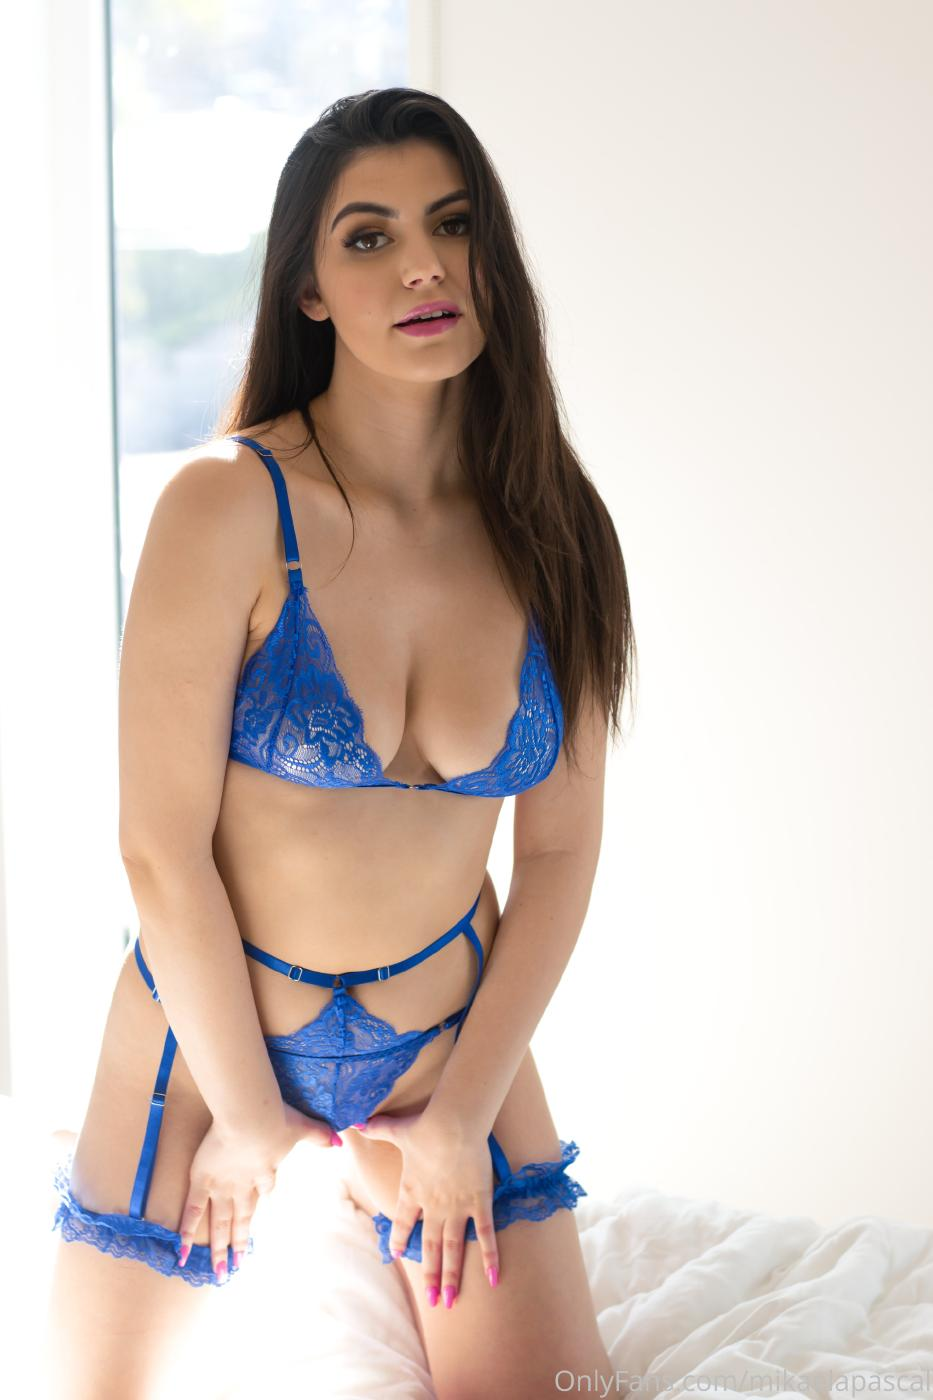 Mikaela Pascal Onlyfans March Extras Leaked 0023